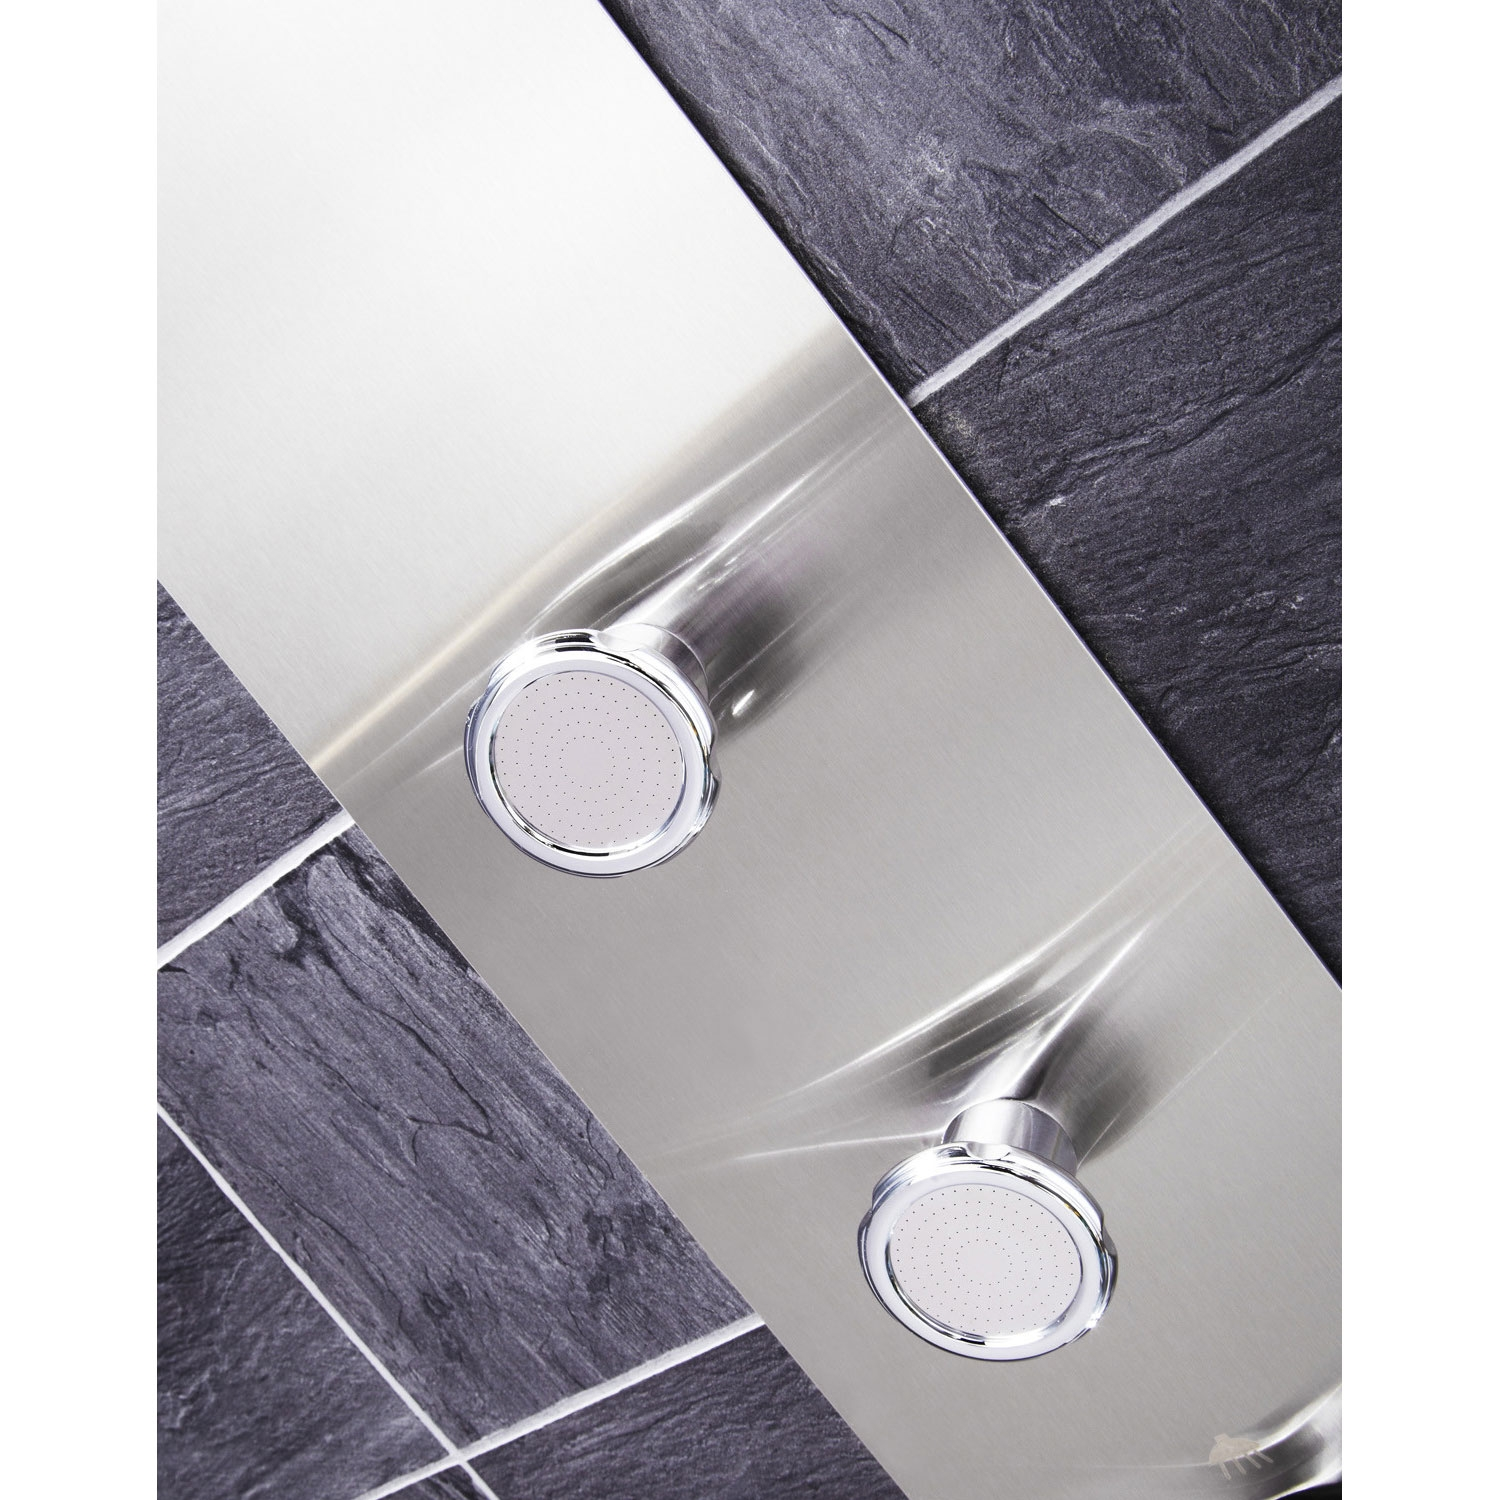 Verona Modique Shower Panel 3 Round Body Jets with Shower Hand-1